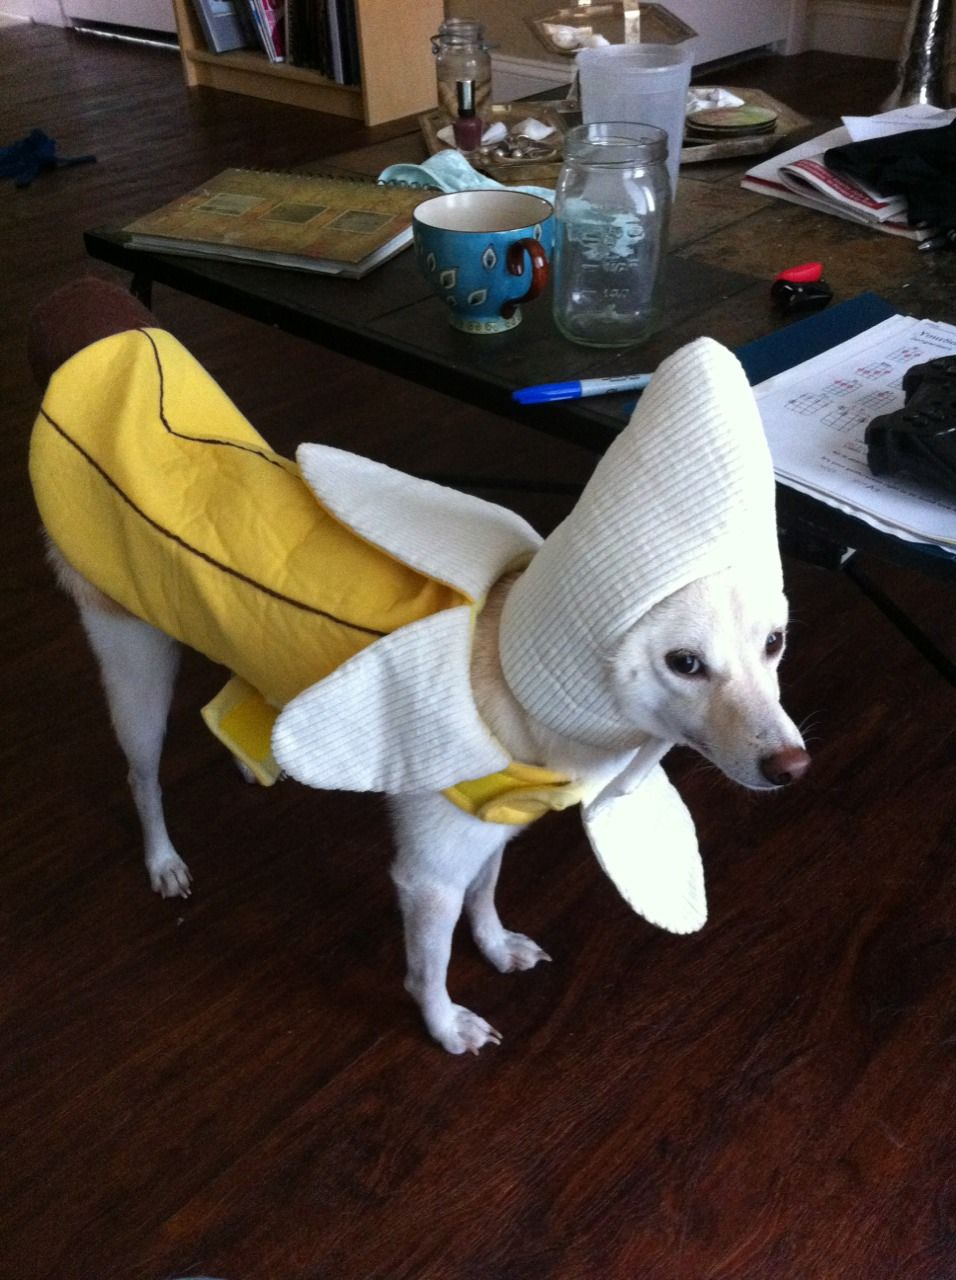 The Best Thing I Ever Bought Was A Banana Costume For My Dog